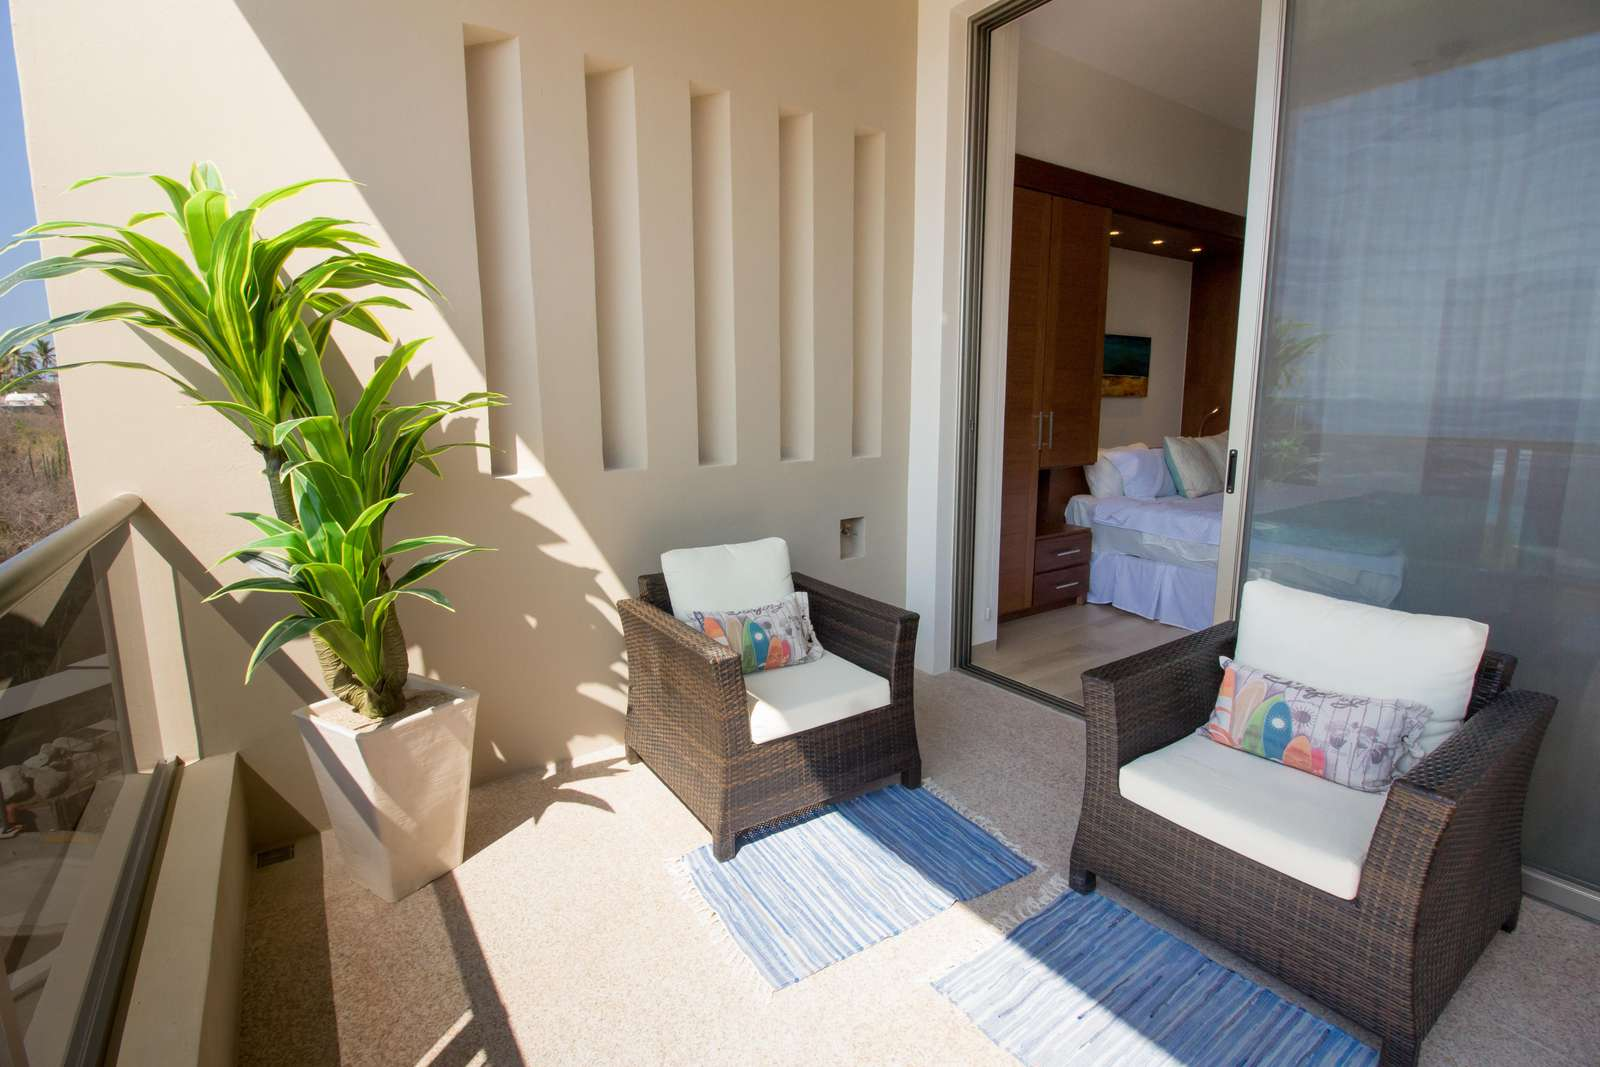 Comfortable seating on the terrace